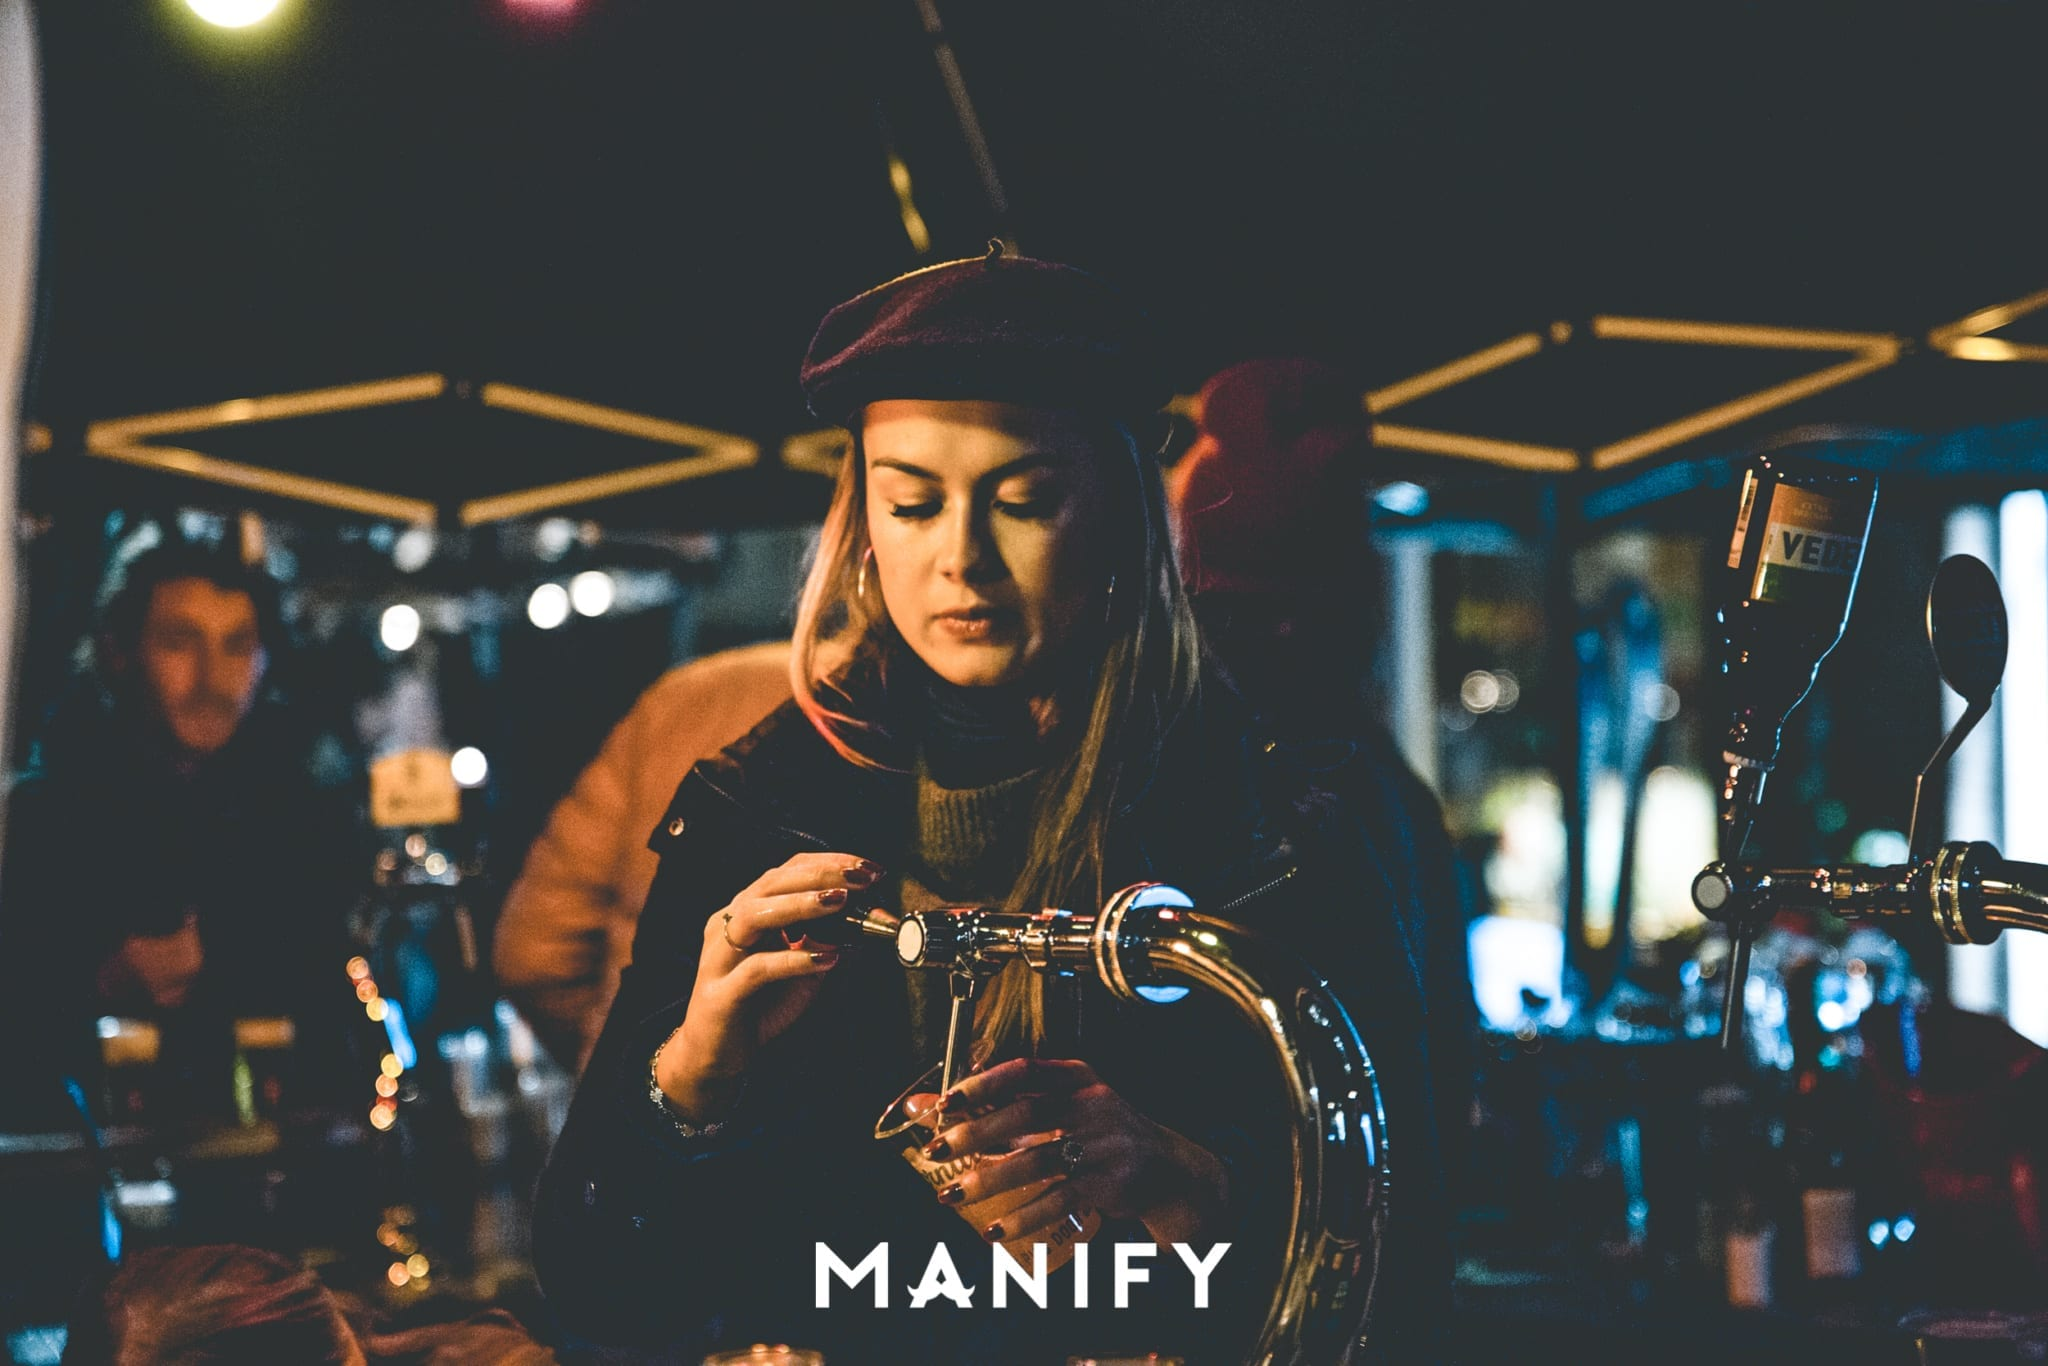 Manify_Out_of_office-E10_WM-35-manify